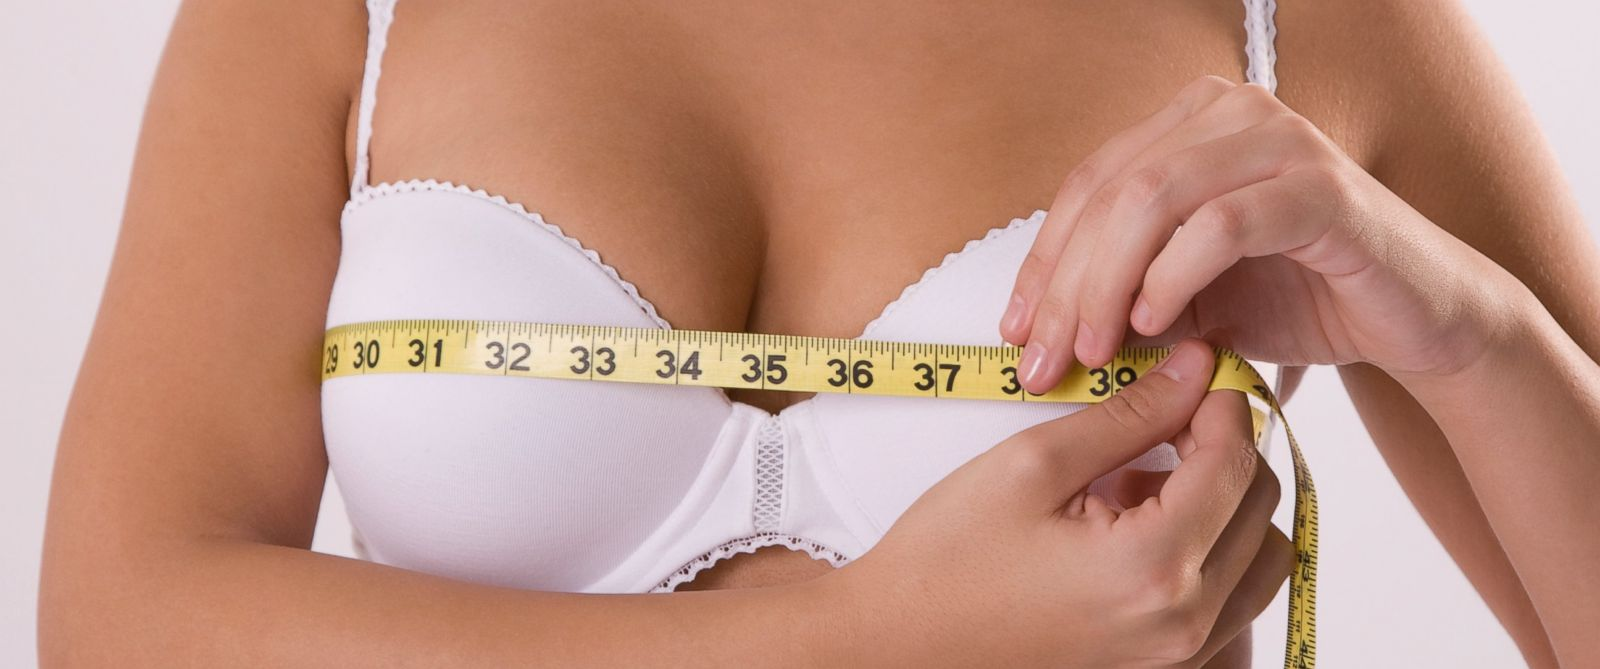 Celebs and every day women are downsizing their breast sizes, plastic surgeons say.